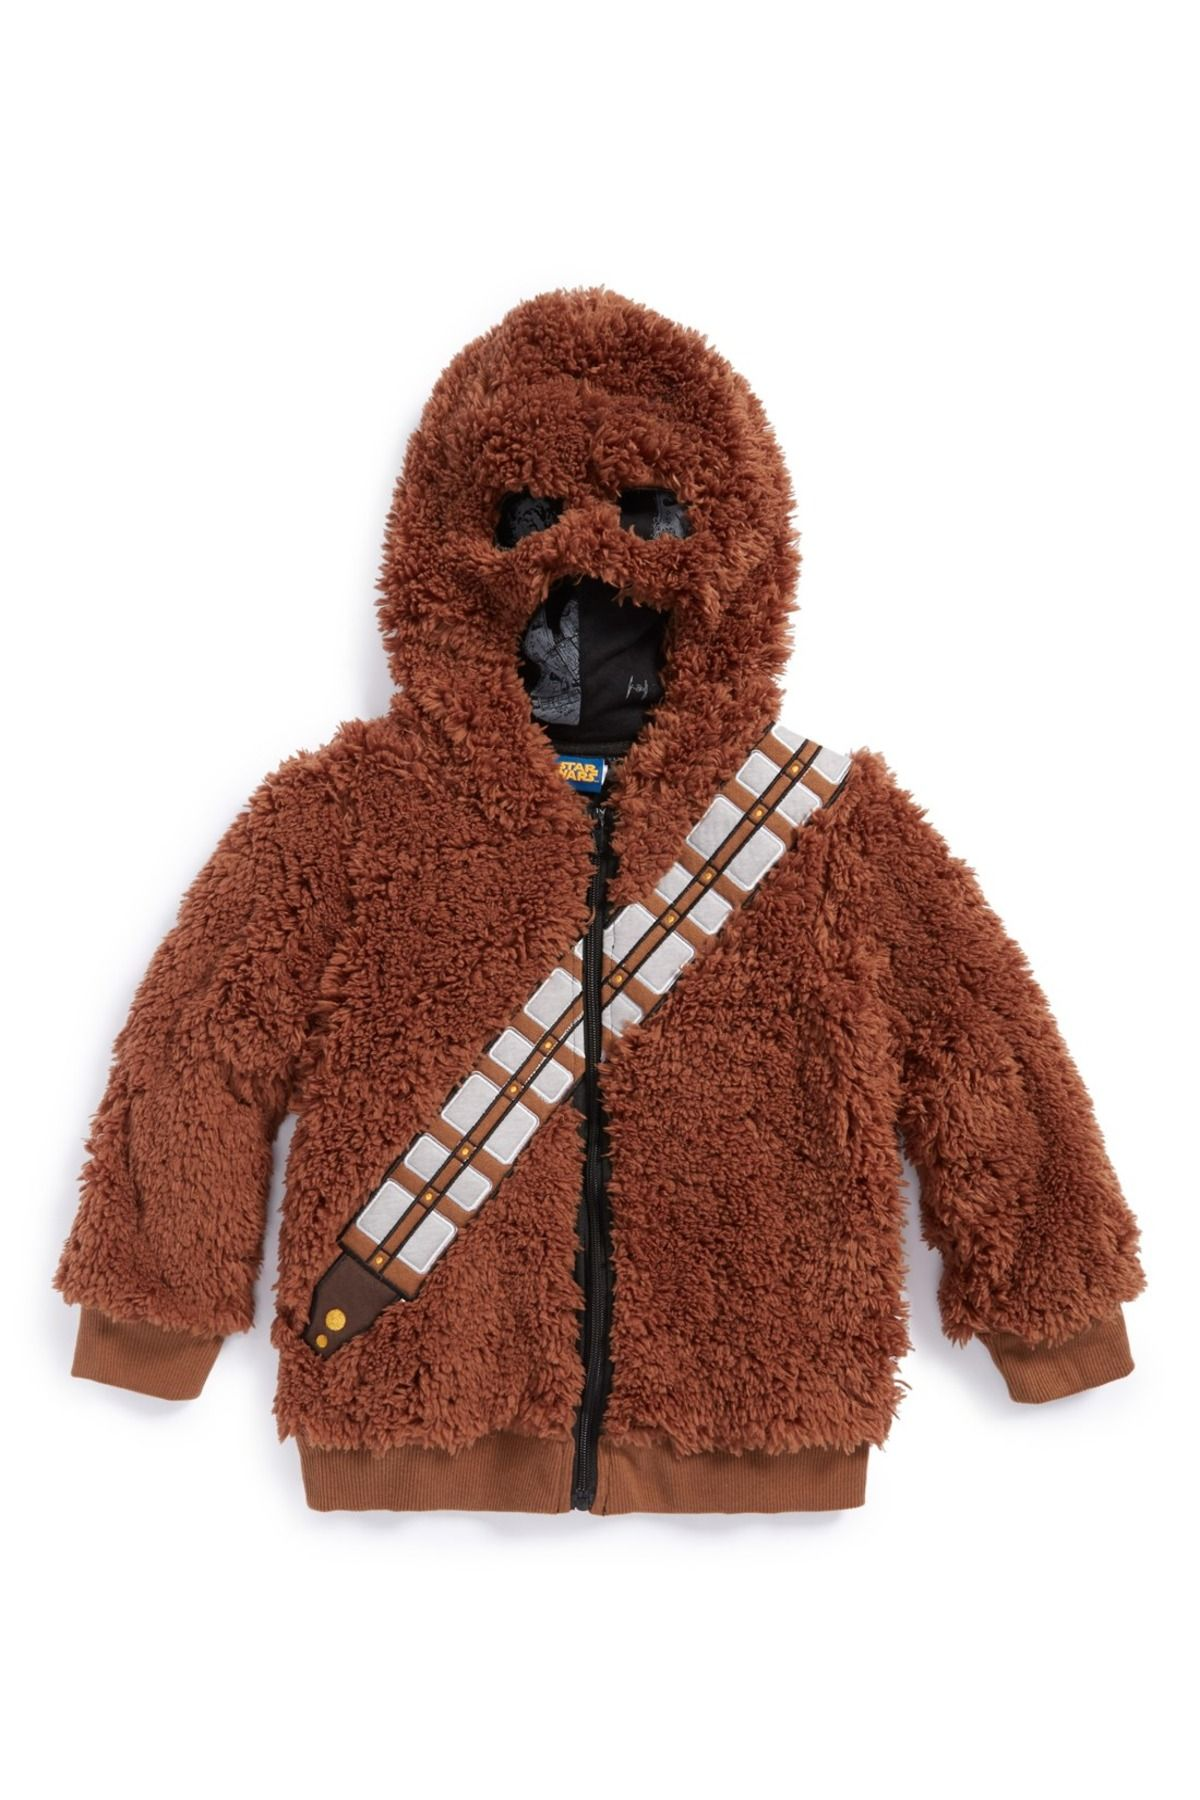 Star WarsTM Chewbacca Hoodie Toddler Boys Little Boys - Hoodie will turn you into chewbacca from star wars